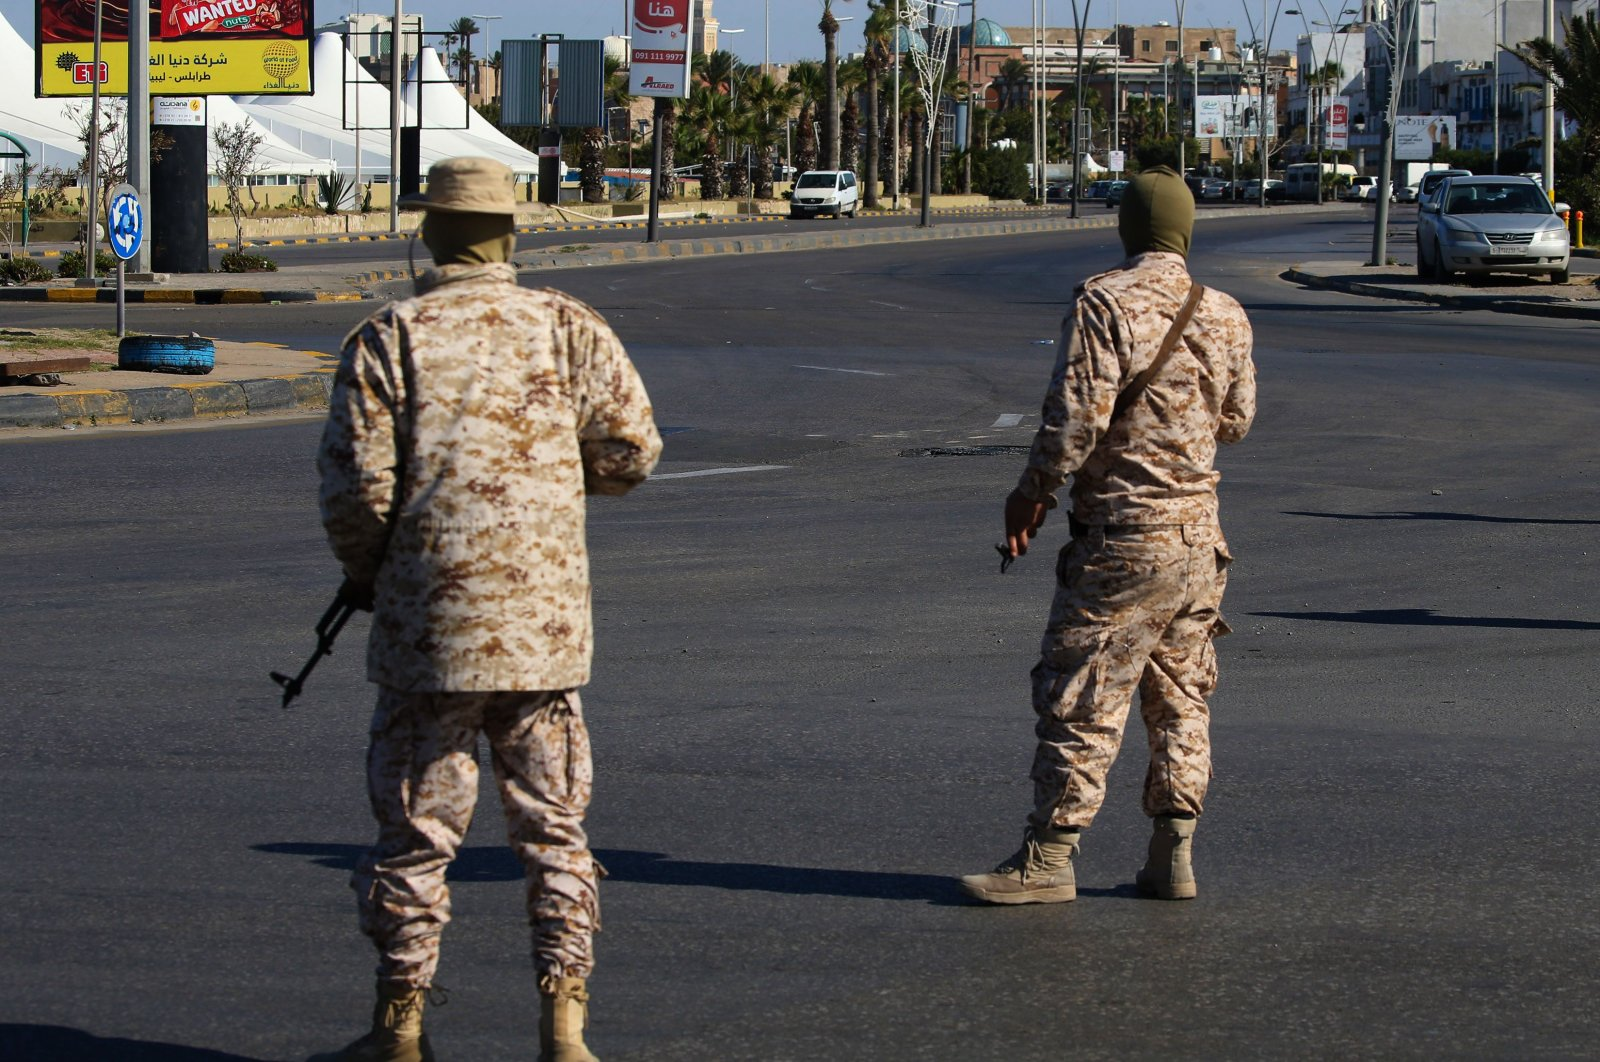 Members of the Libyan security forces man a checkpoint in the capital Tripoli, to ensure that the strict measures taken by the authorities to stem the spread of the novel coronavirus are respected, on April 10, 2020. (AFP Photo)